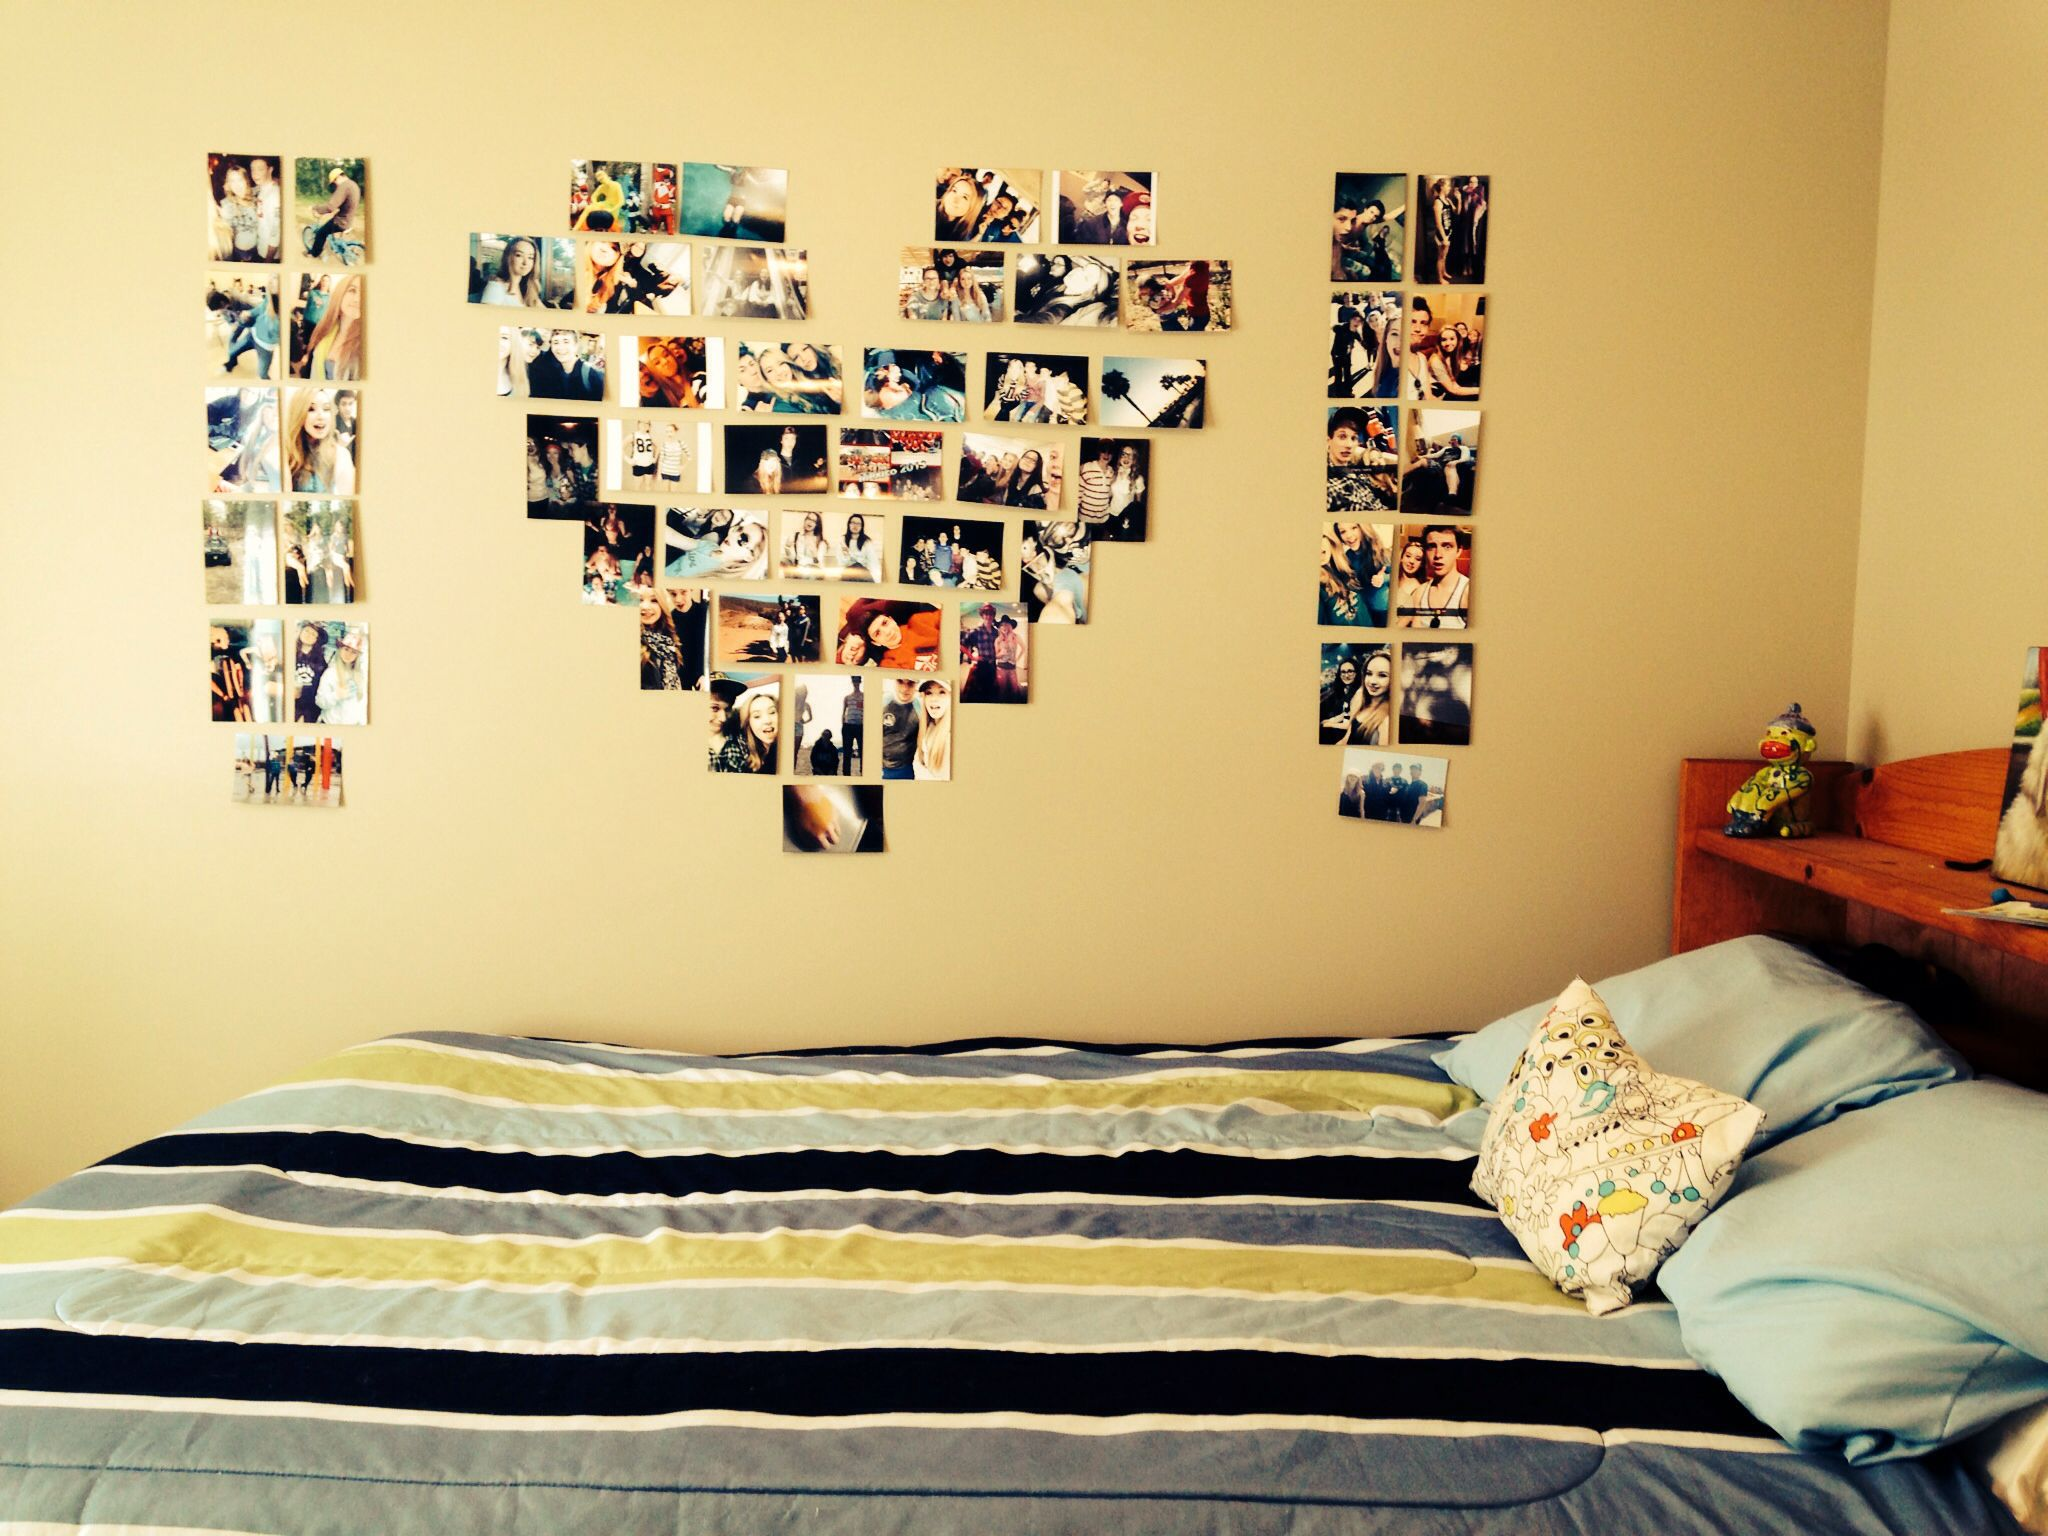 Room decor, teen room, wall collage | Decorating ideas | Pinterest ...